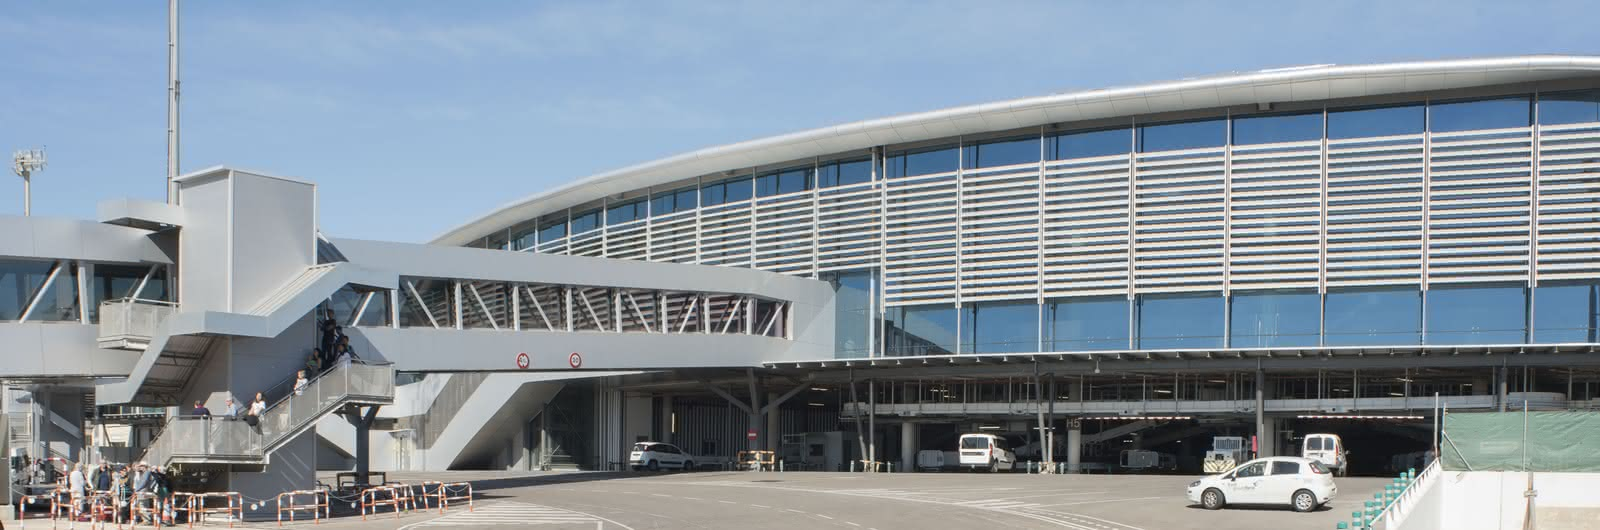 valencia airport header